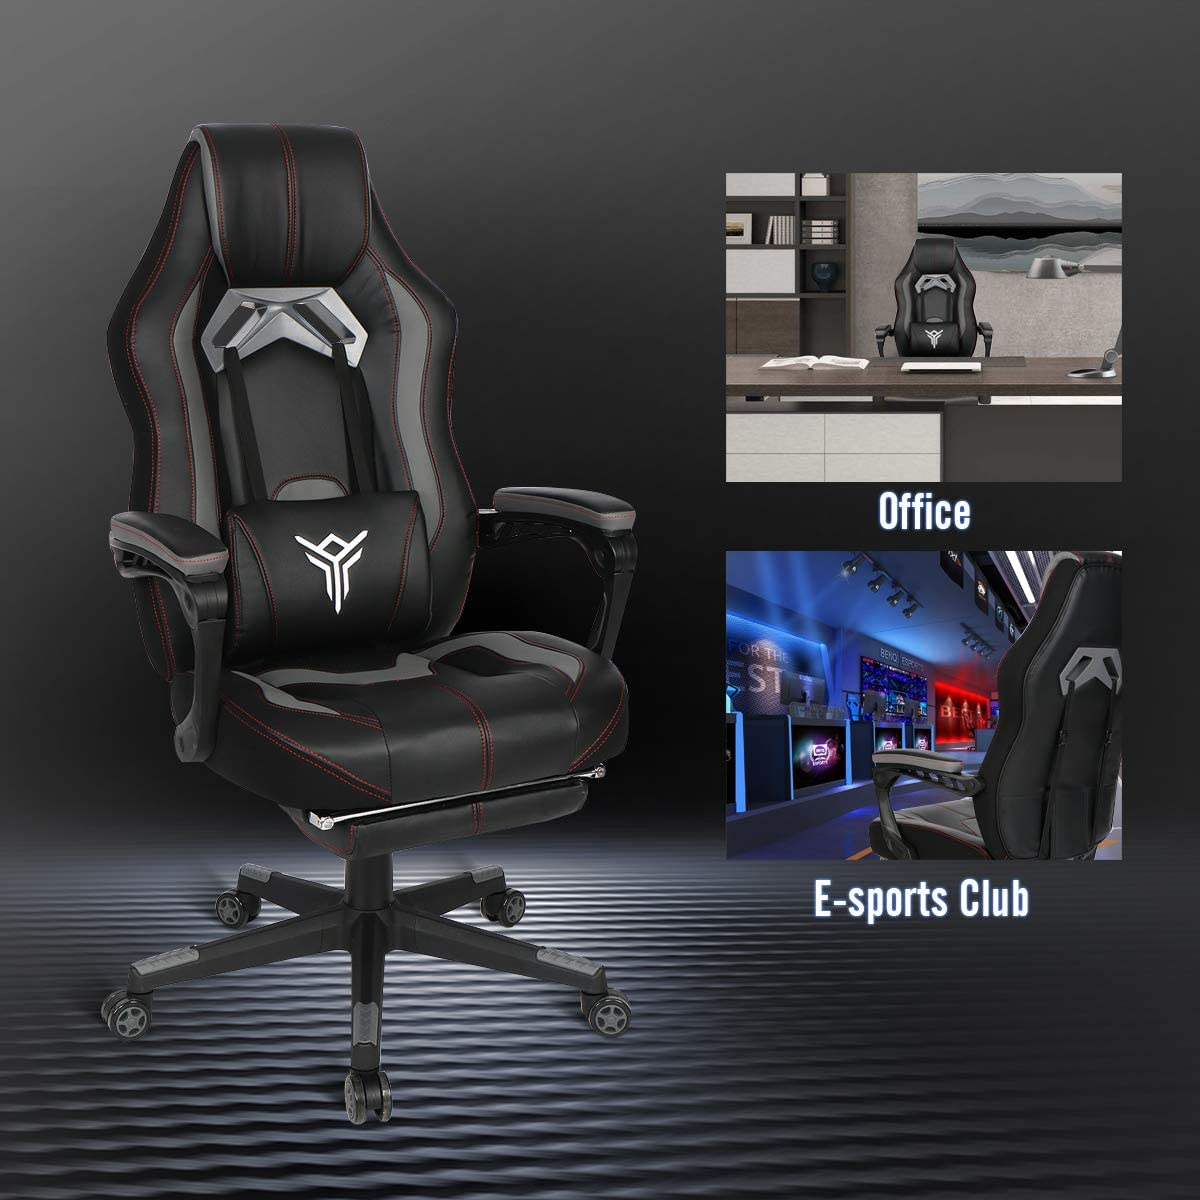 PULUOMIS Massage Gaming Chair White Swirl Computer Chair with Footrest Lumbar Support Headrest Adjustable Ergonomic Video Gaming Chair for Adults for Home Office Grey